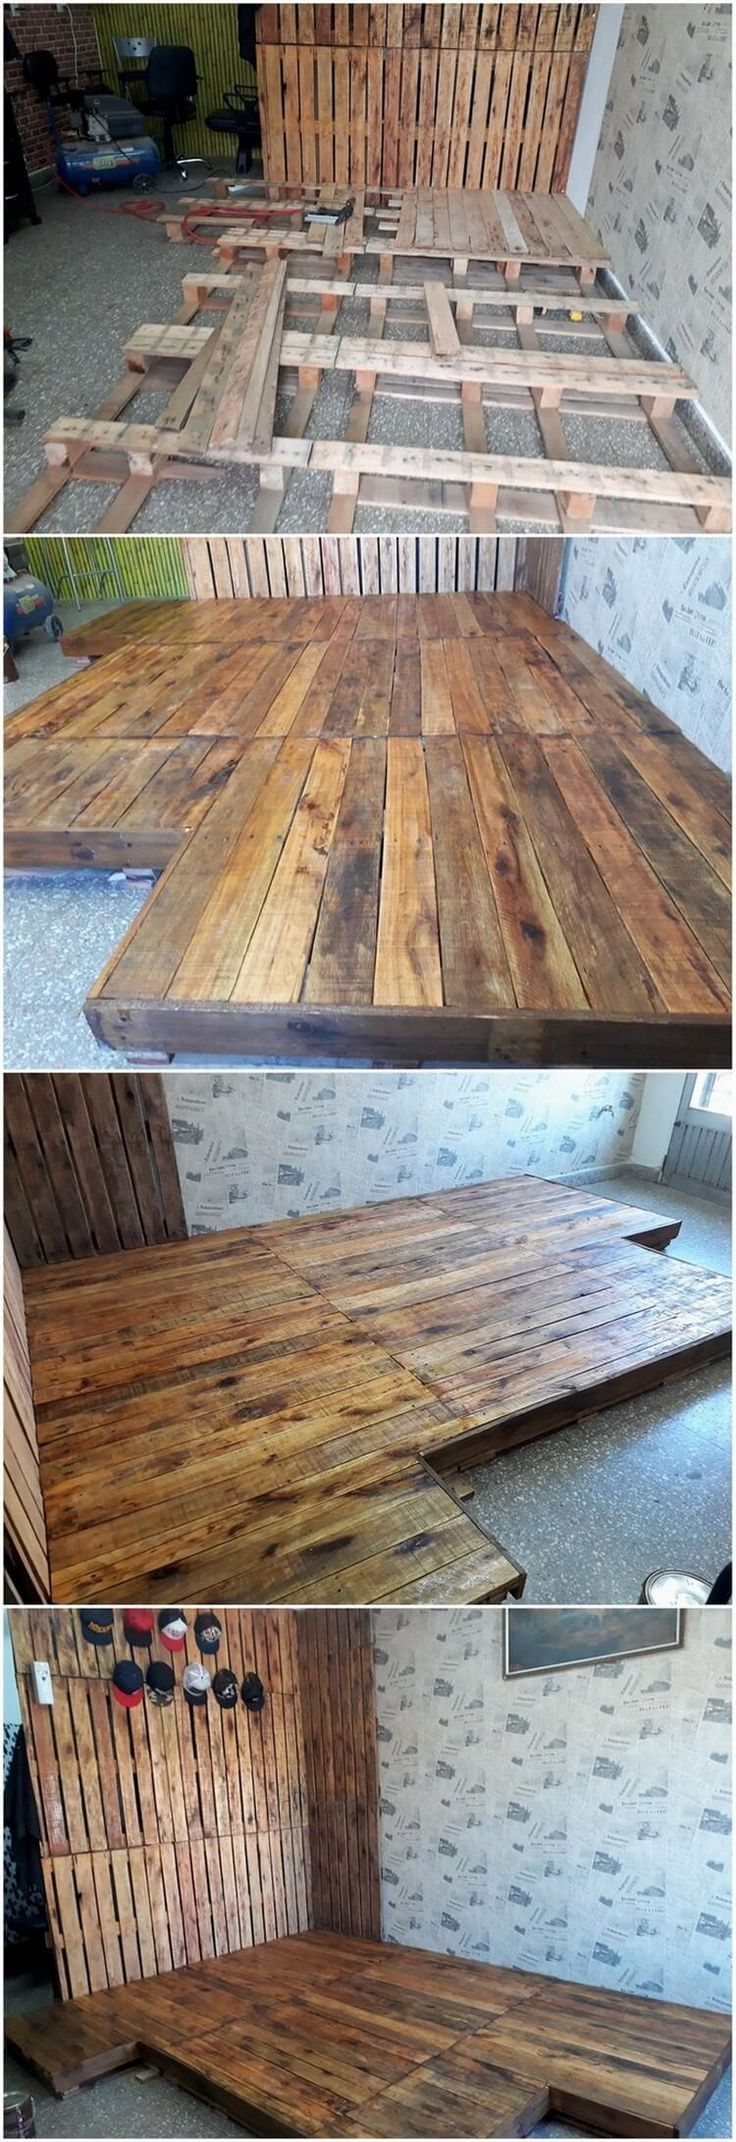 This is a much attractive looking crafting of the wood pallet that is giving the feel of beautification to the floor area. Yes, this crafting project has been all about the pallet flooring that is giving out the artistic impact to the whole of the floor area.